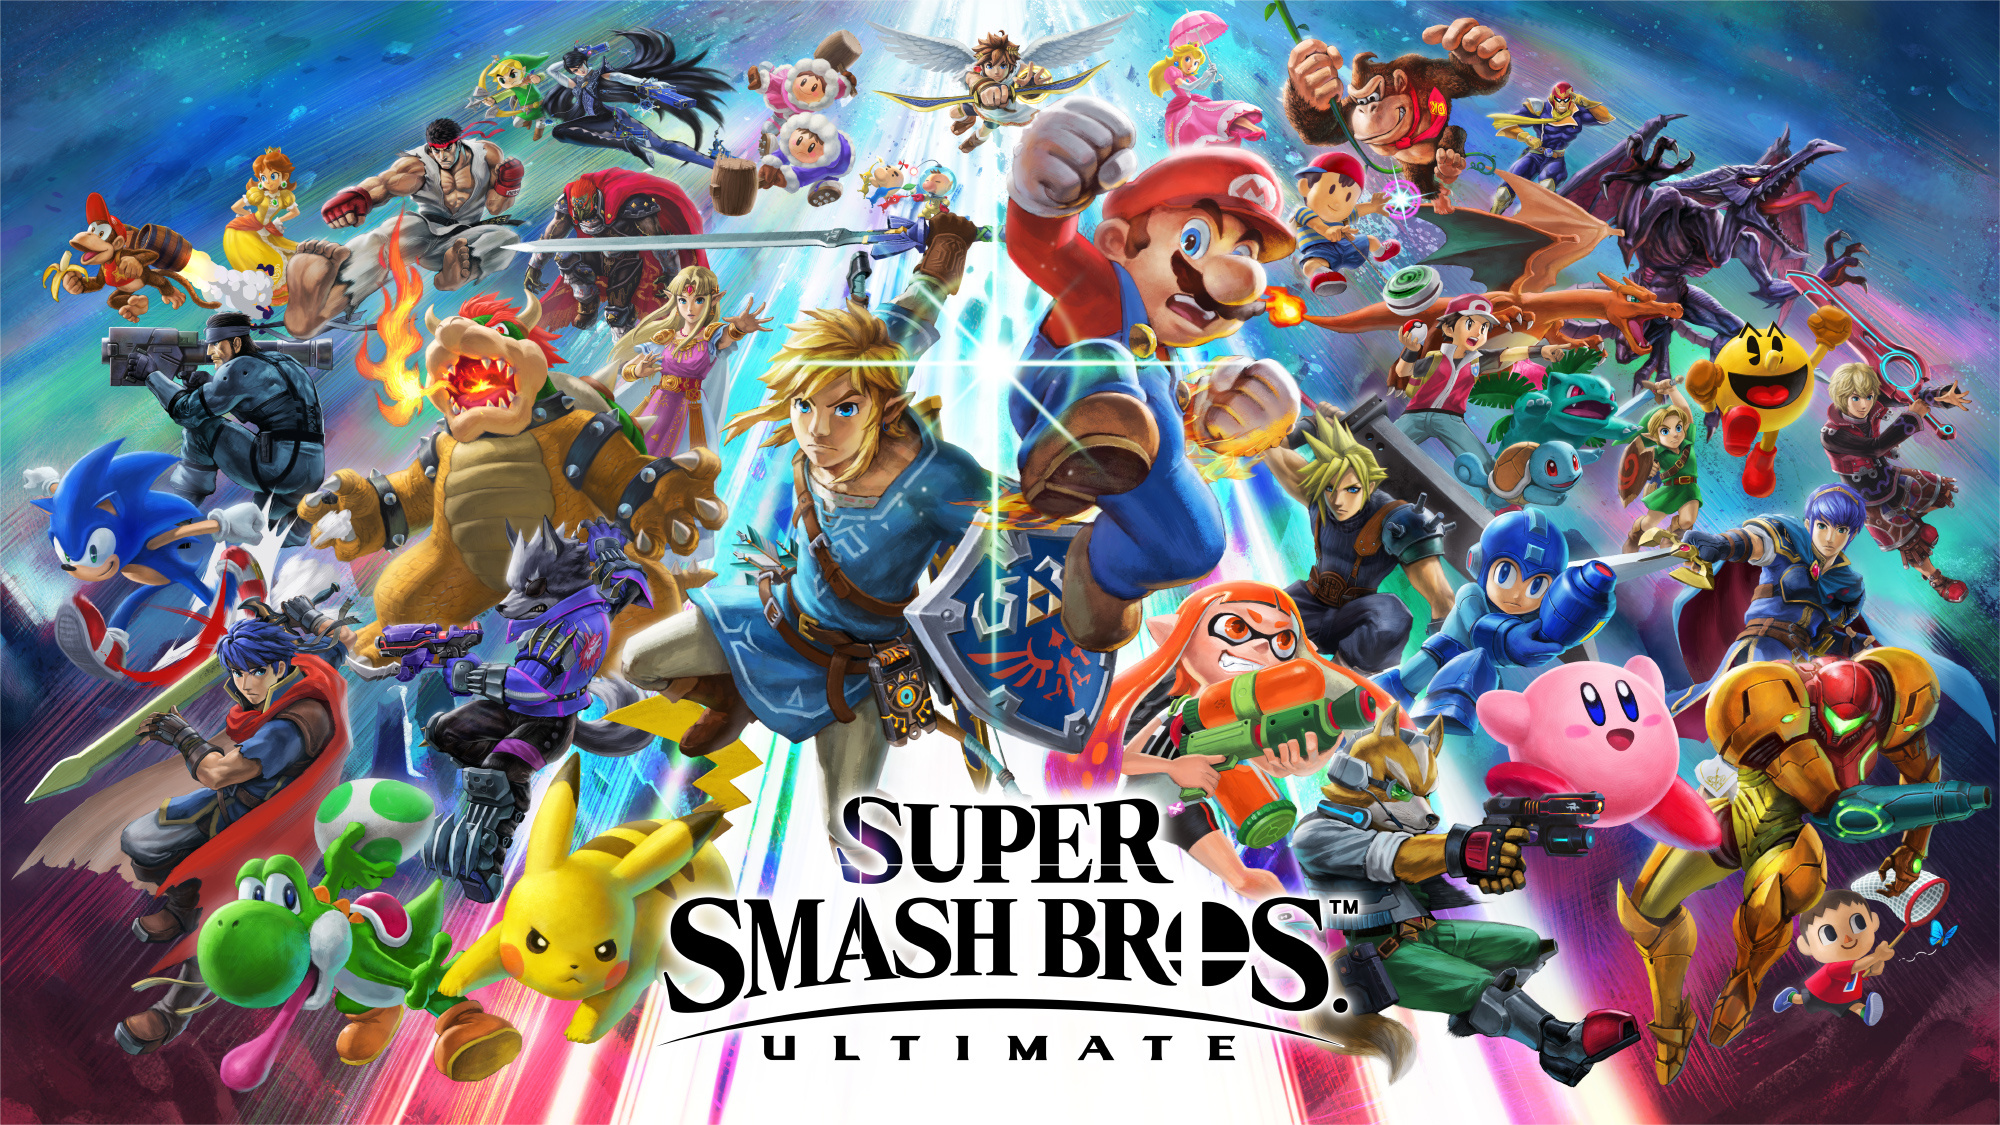 Gallery Super Smash Bros Ultimate Full Character Roster